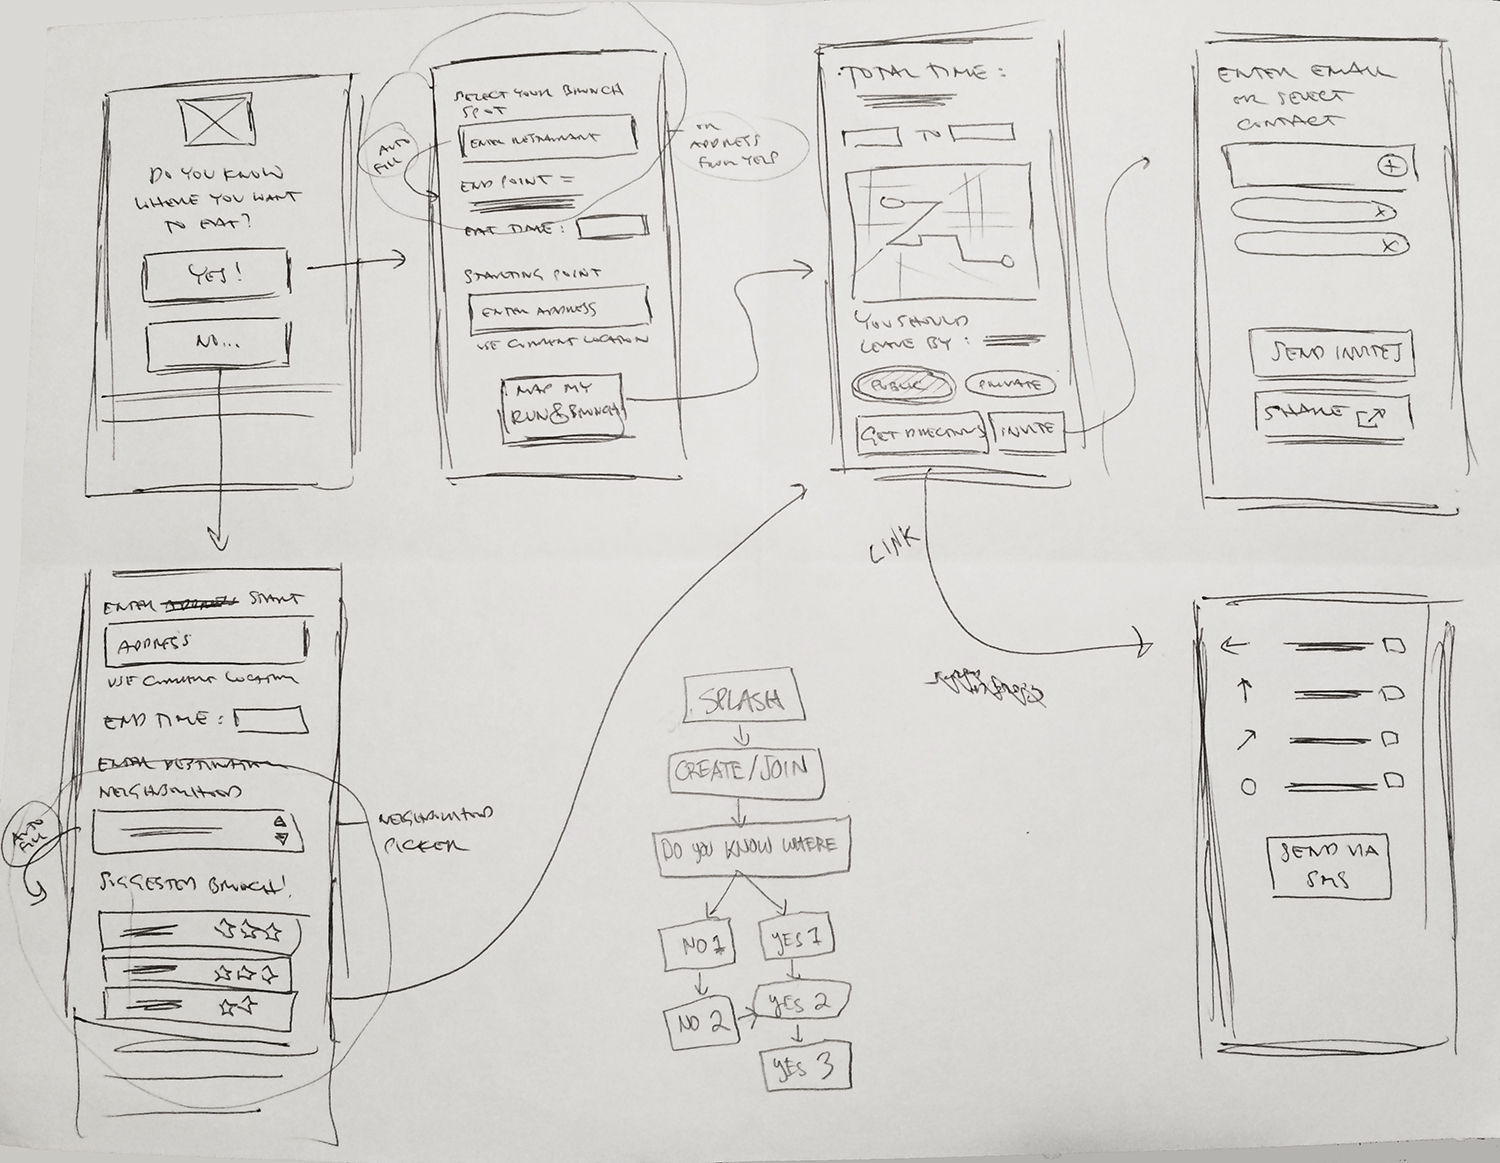 Sketches of mobile wireflows to surface the mobile elements needed